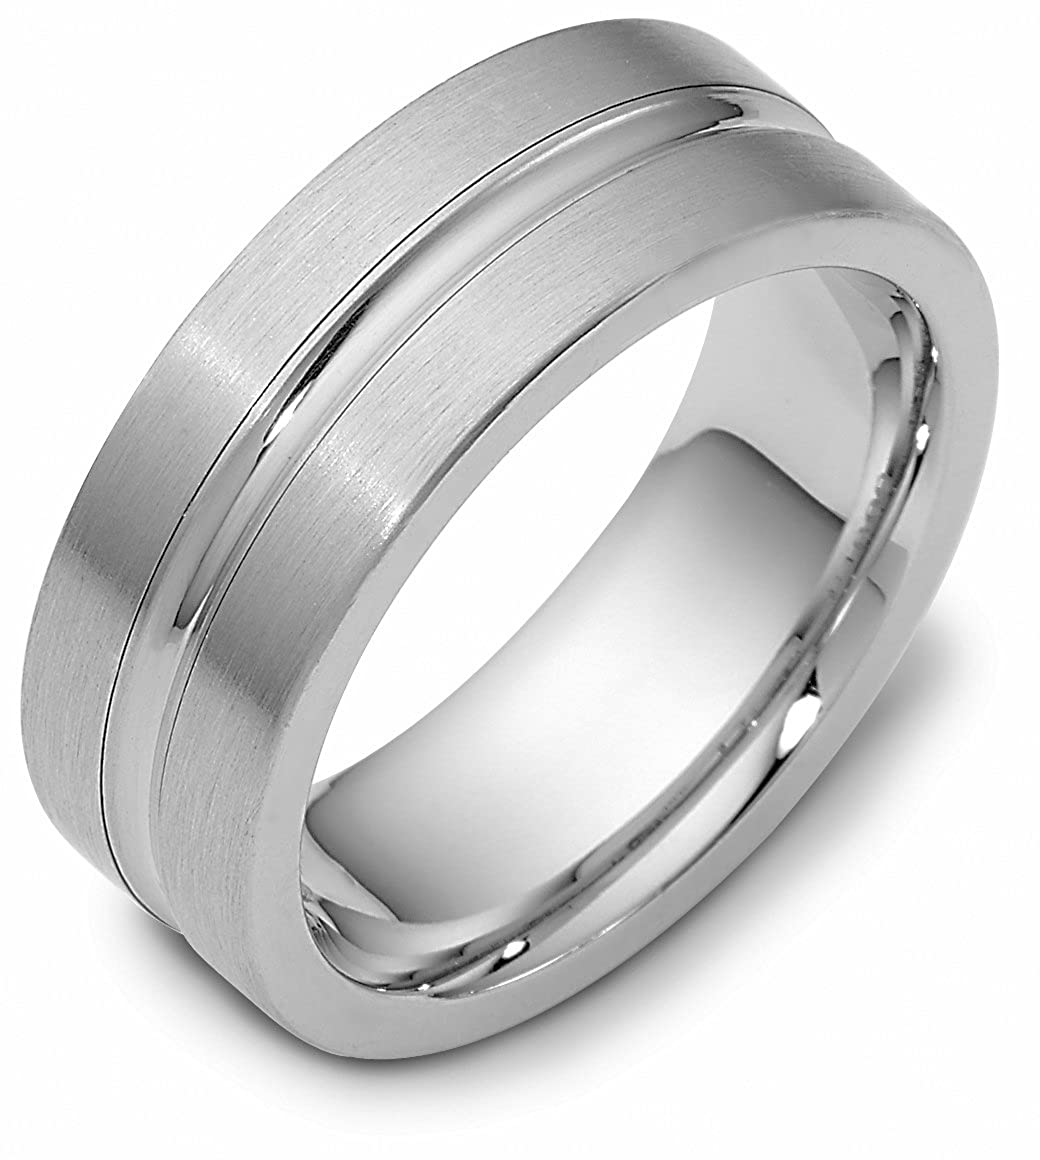 Mens Sterling Silver 8mm Convex Center Comfort Fit Wedding Band Ring